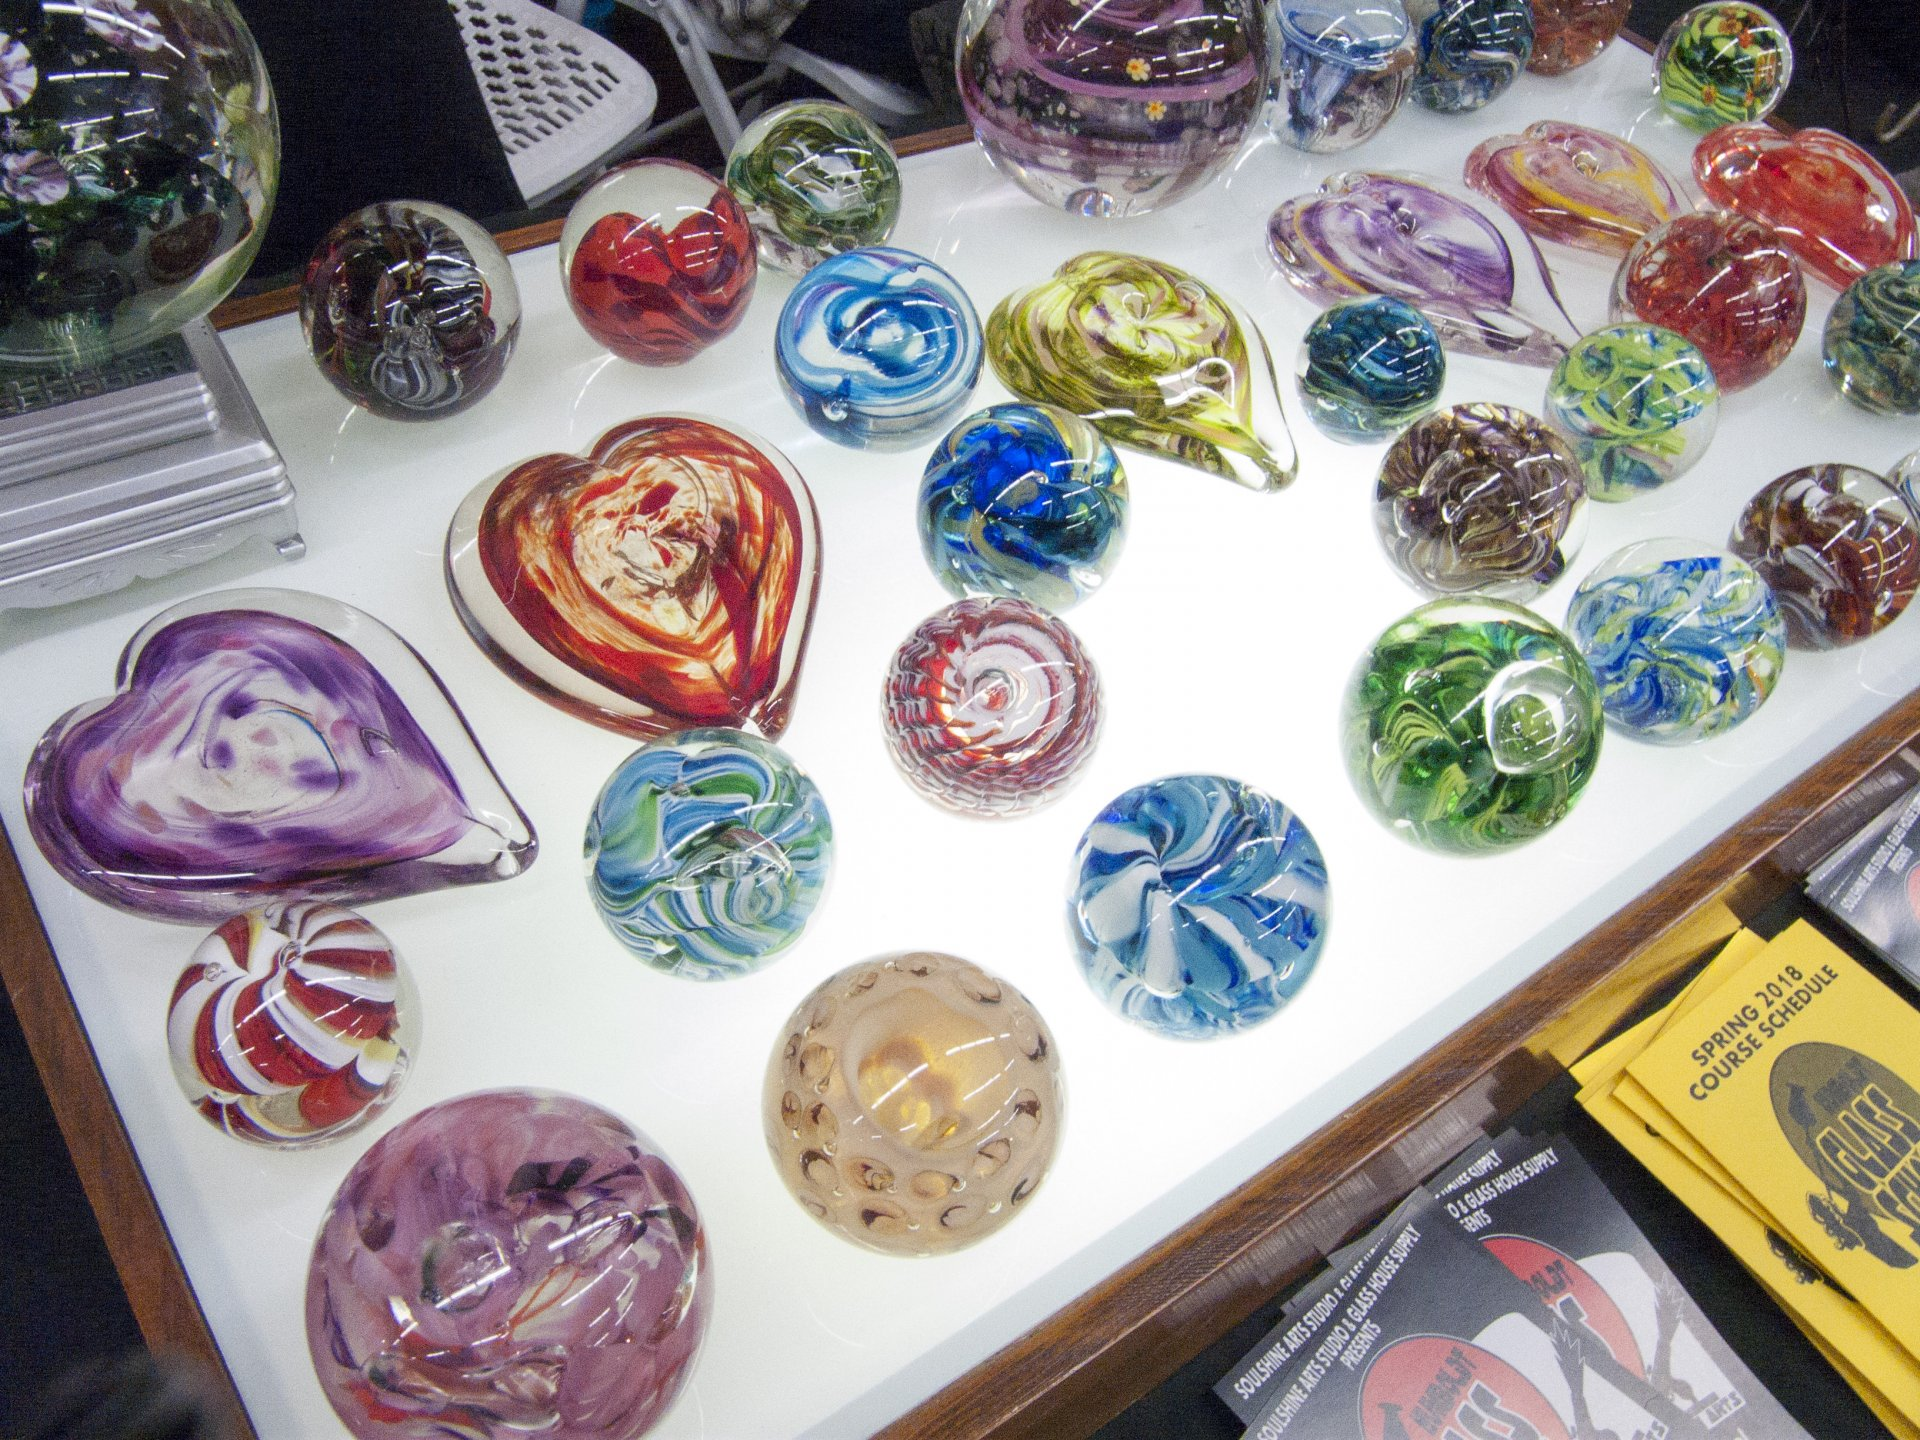 Marble display by Humboldt Glass School at Humboldt Marble Weekend on Feb. 10. Photo by Matthew Hable.